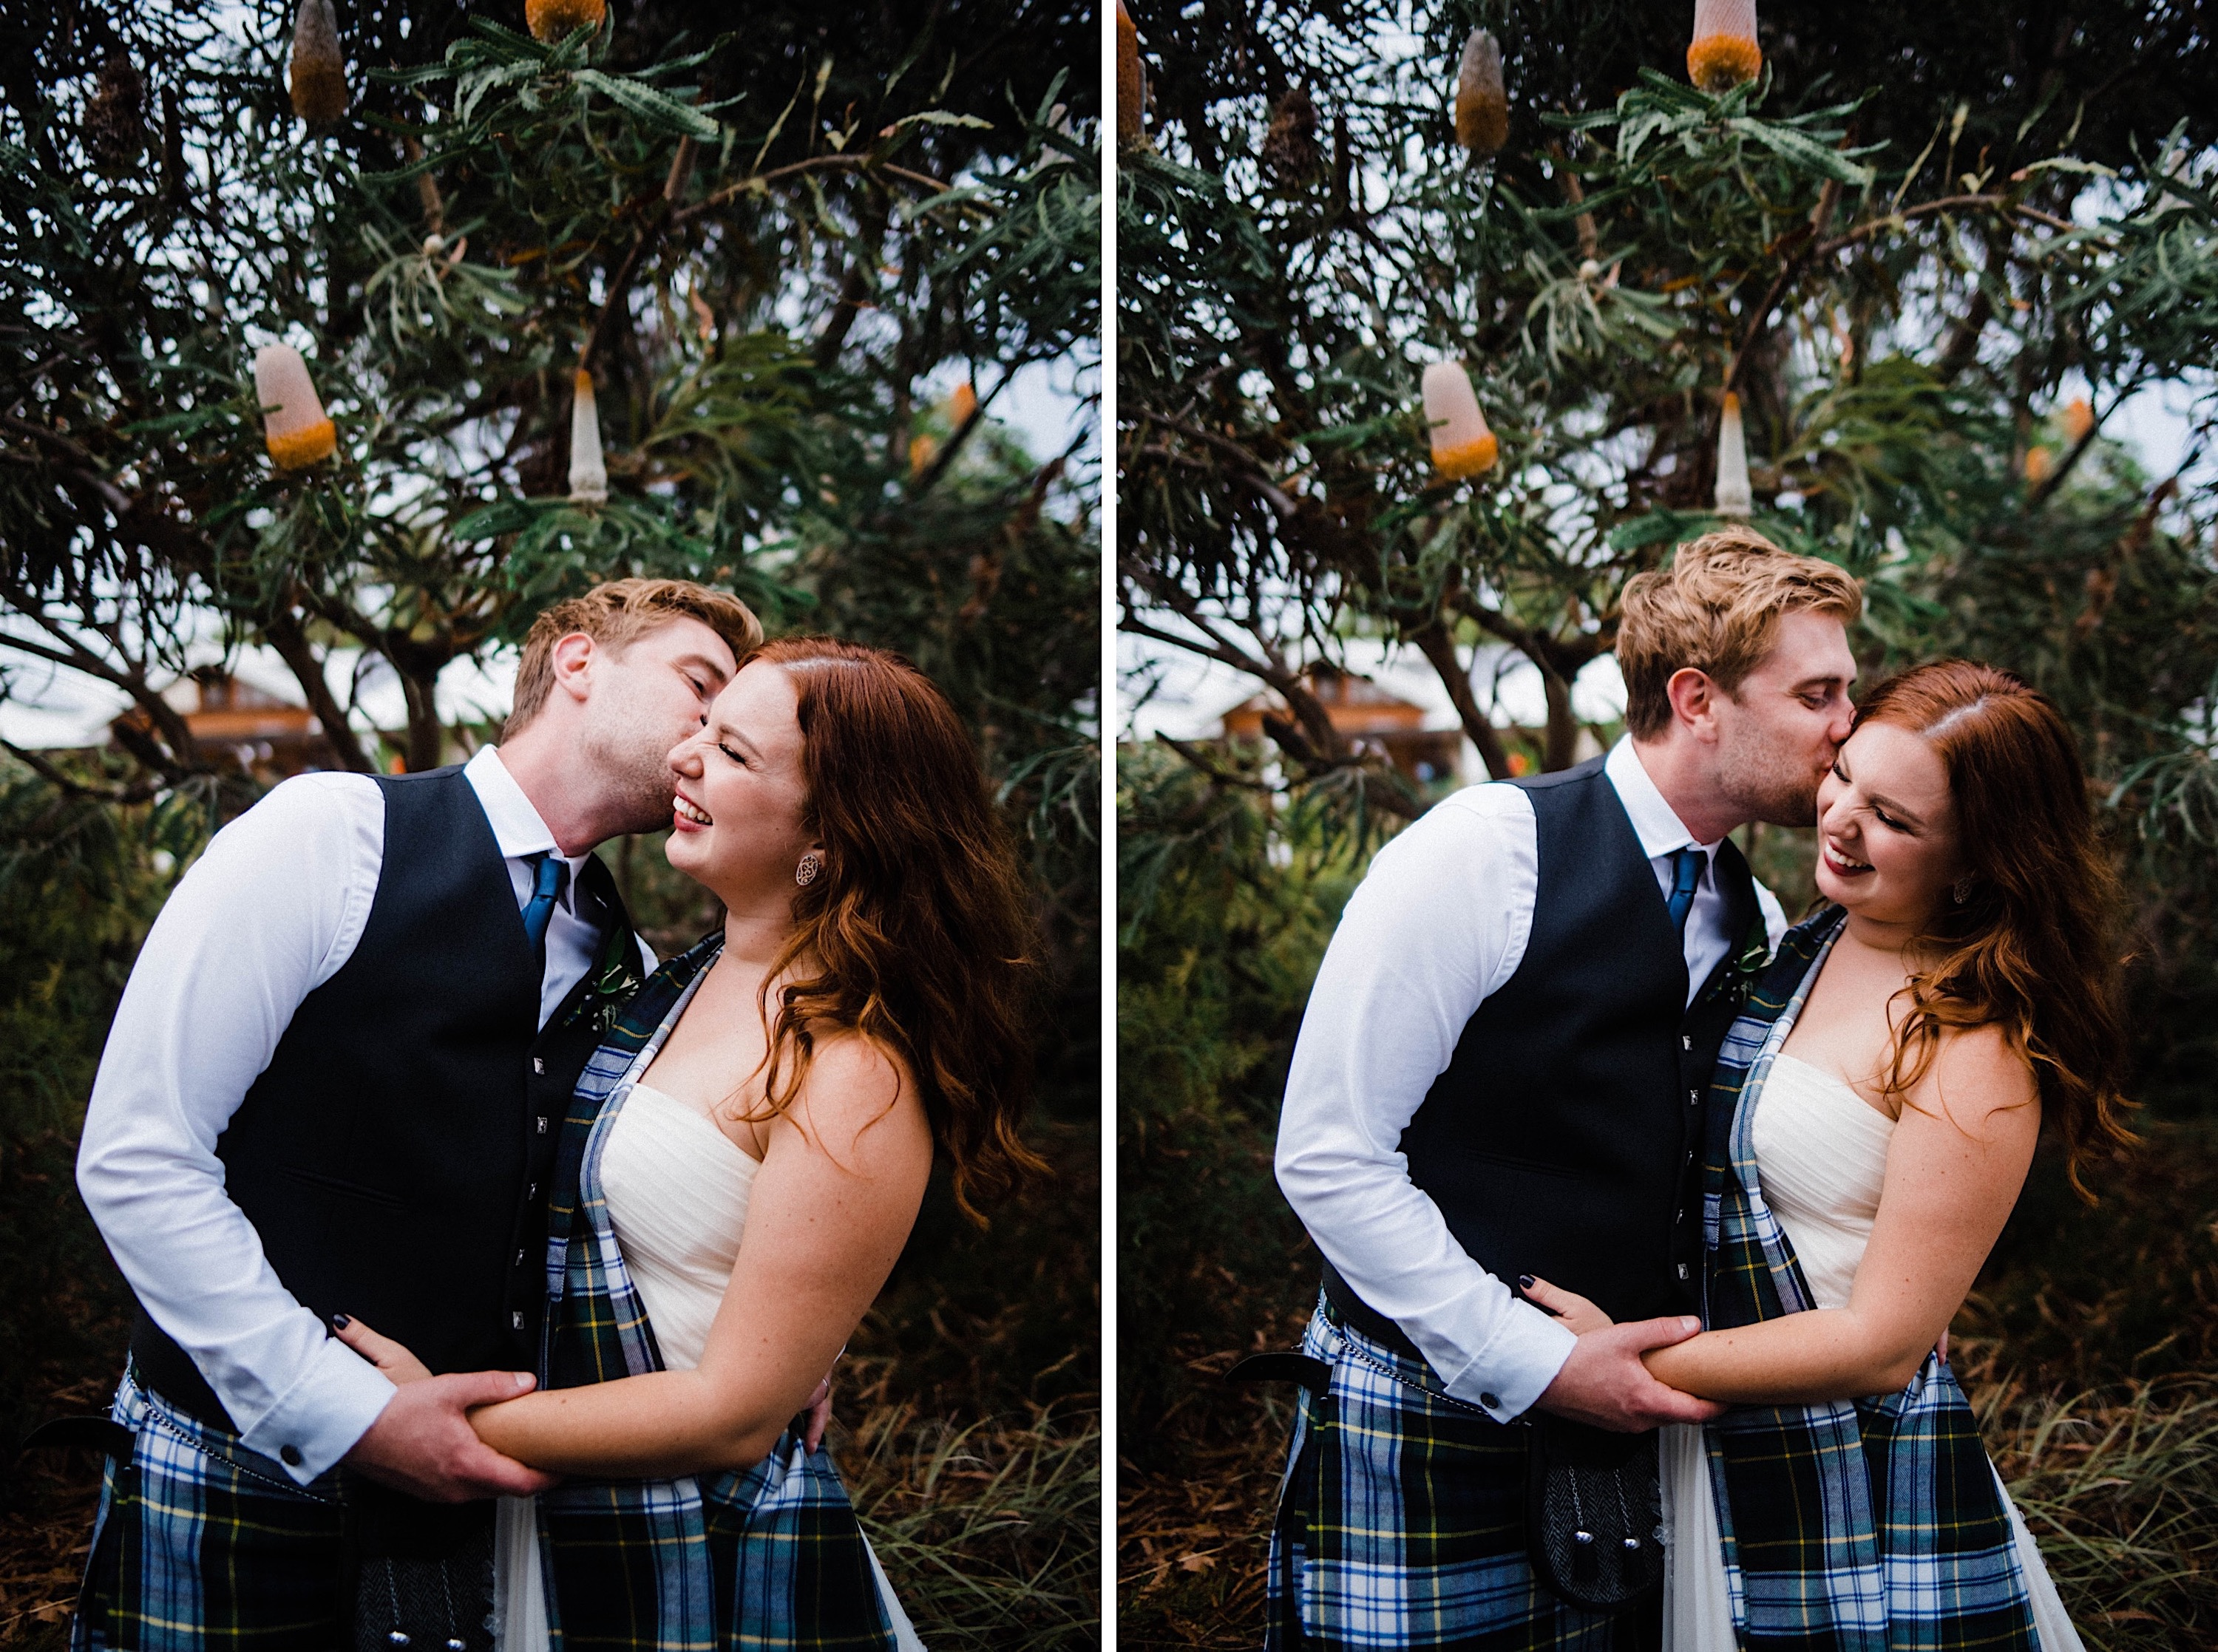 Two side-by-side wedding portaits at a Sustainable Backyard Wedding of the bride & groom kissing and laughing in front of a Banksia Tree.